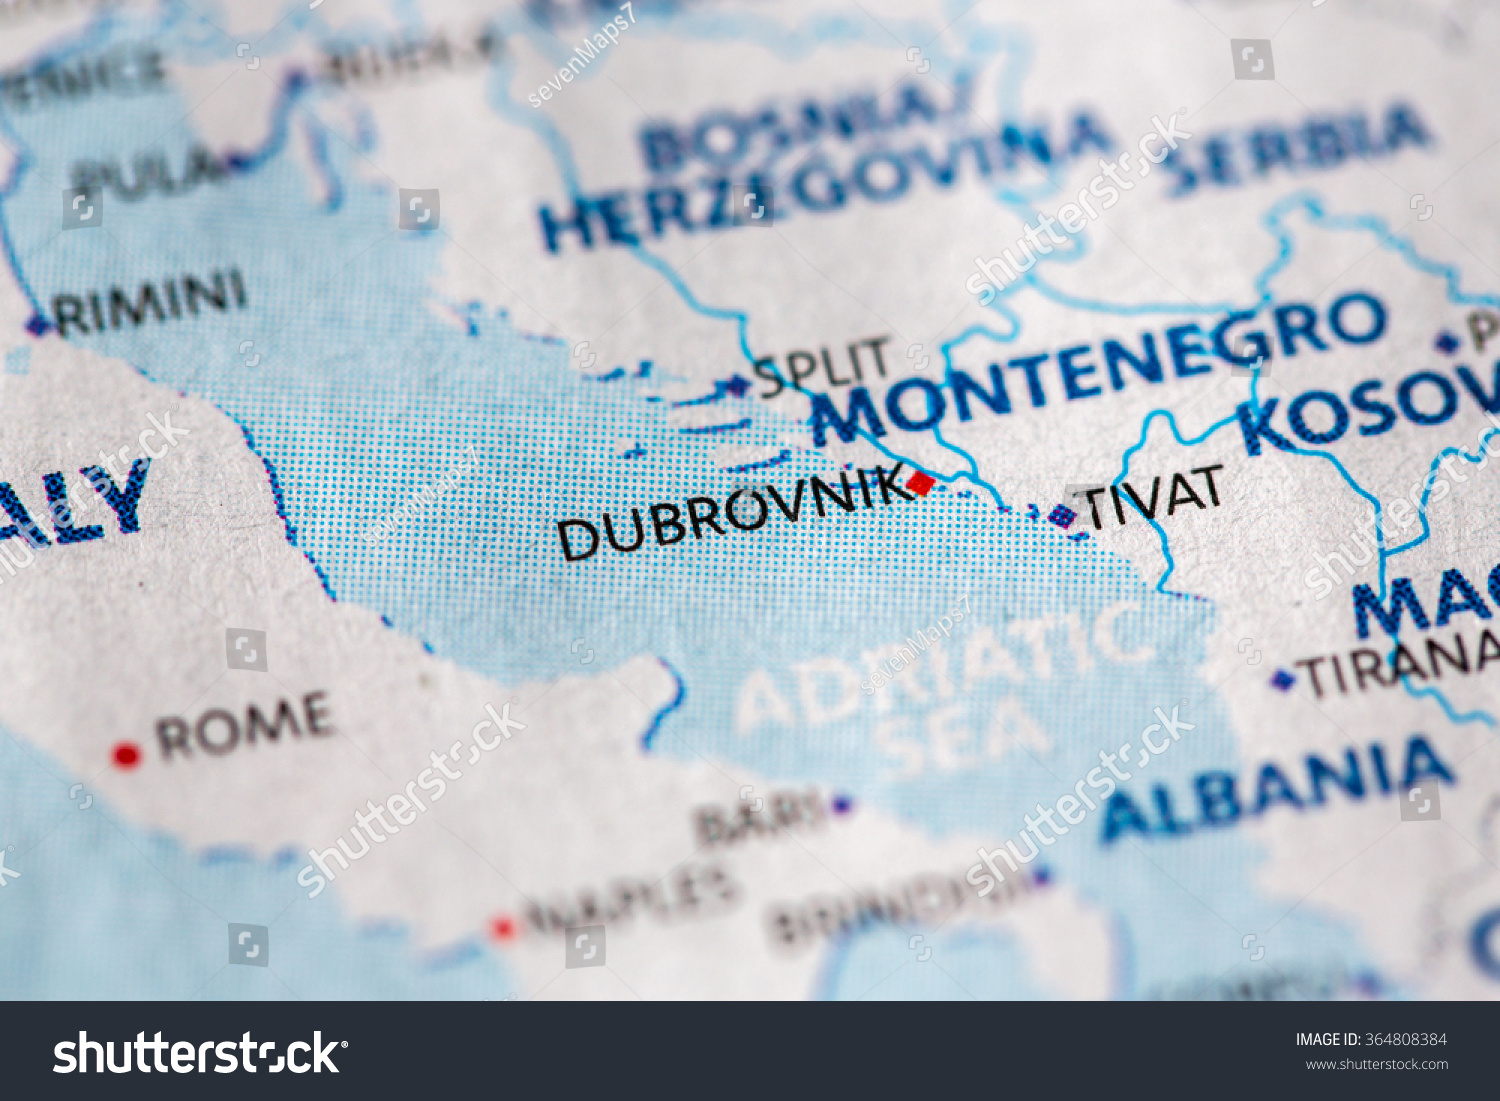 Closeup dubrovnik croatia on political map stock photo image closeup of dubrovnik croatia on a political map of europe gumiabroncs Gallery